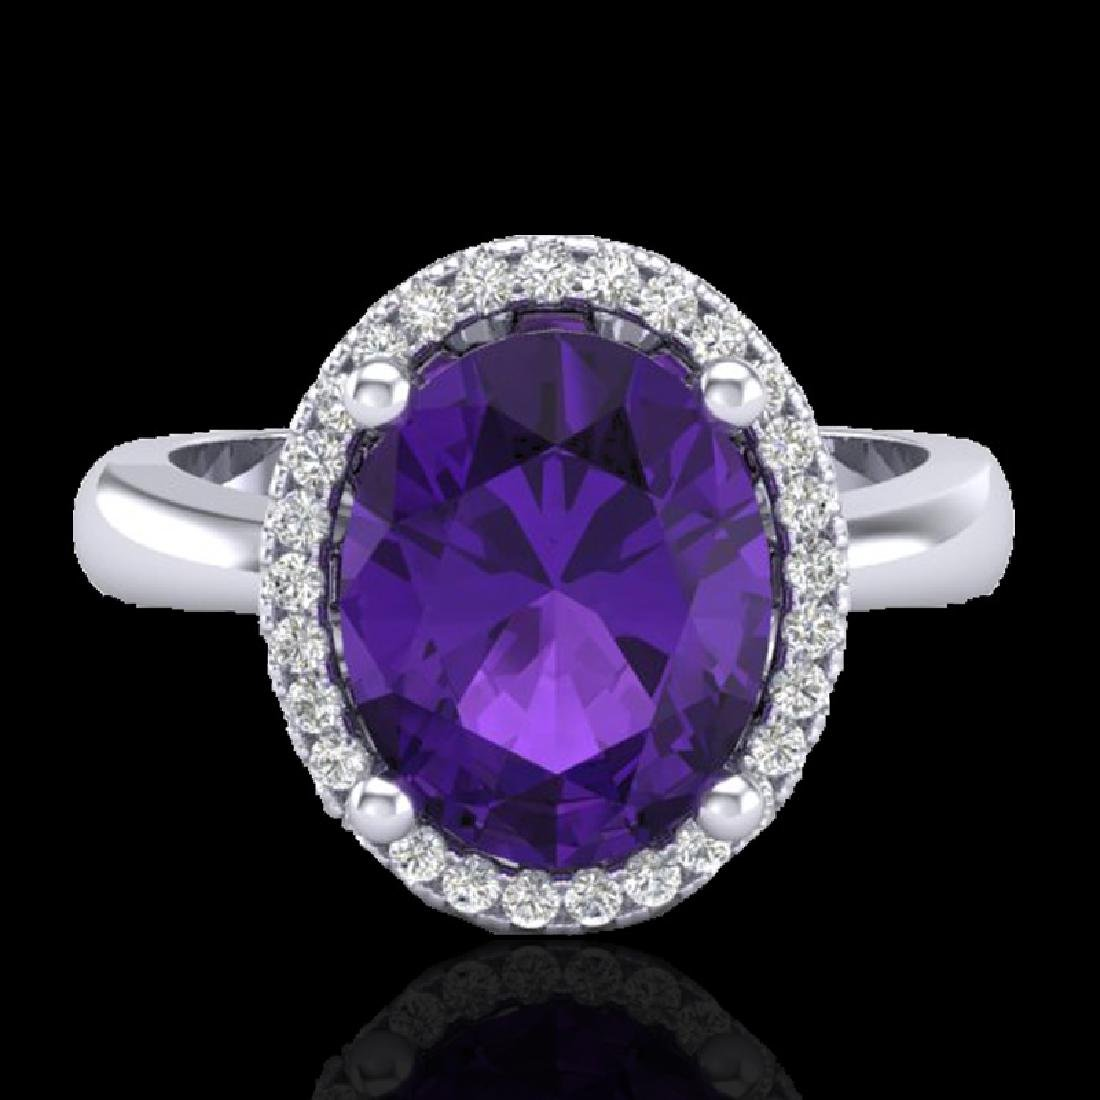 2.50 CTW Amethyst And Micro Pave VS/SI Diamond Ring